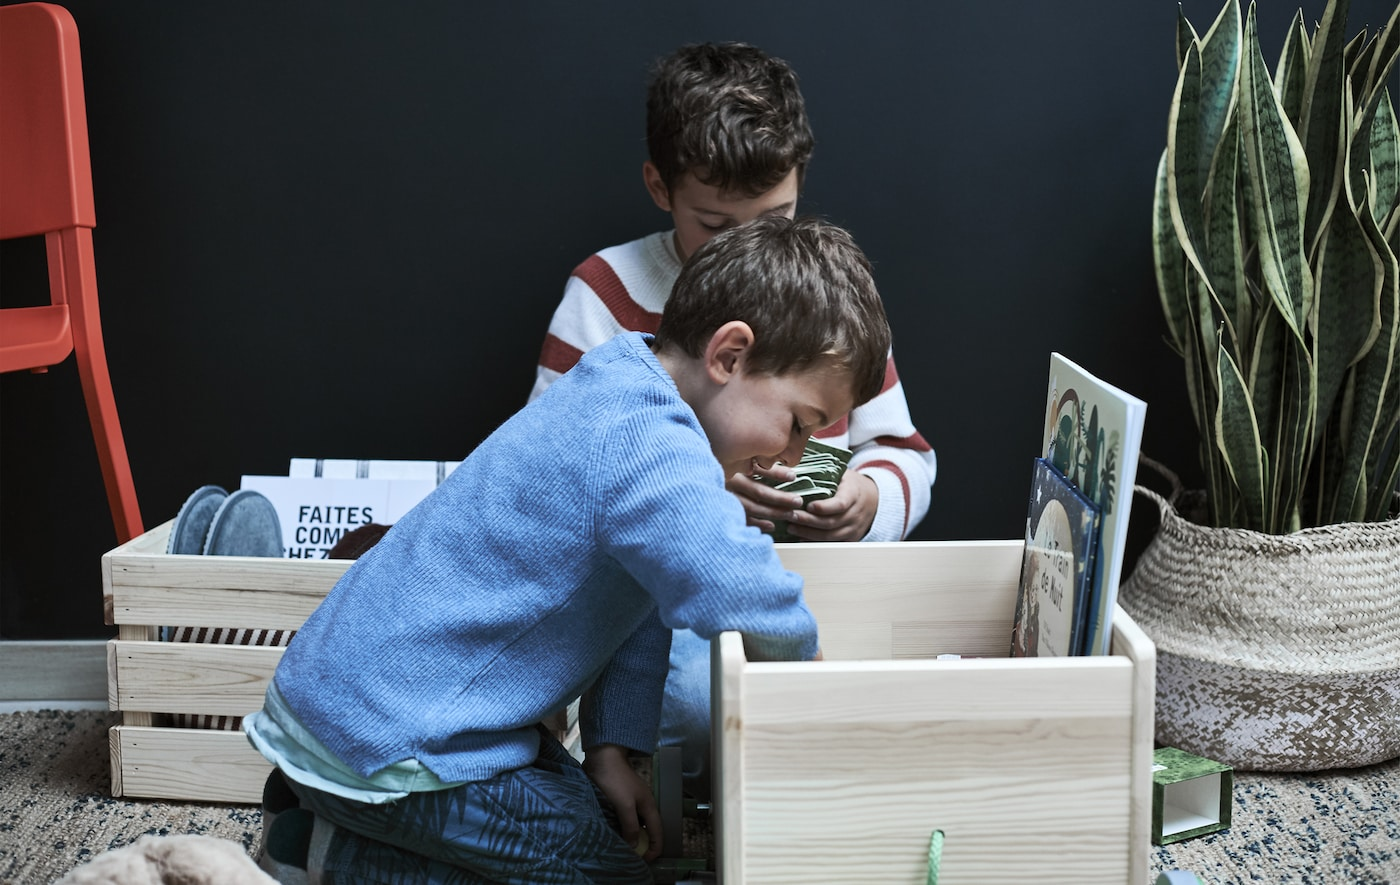 Two boys looking inside a wooden box filled with objects.